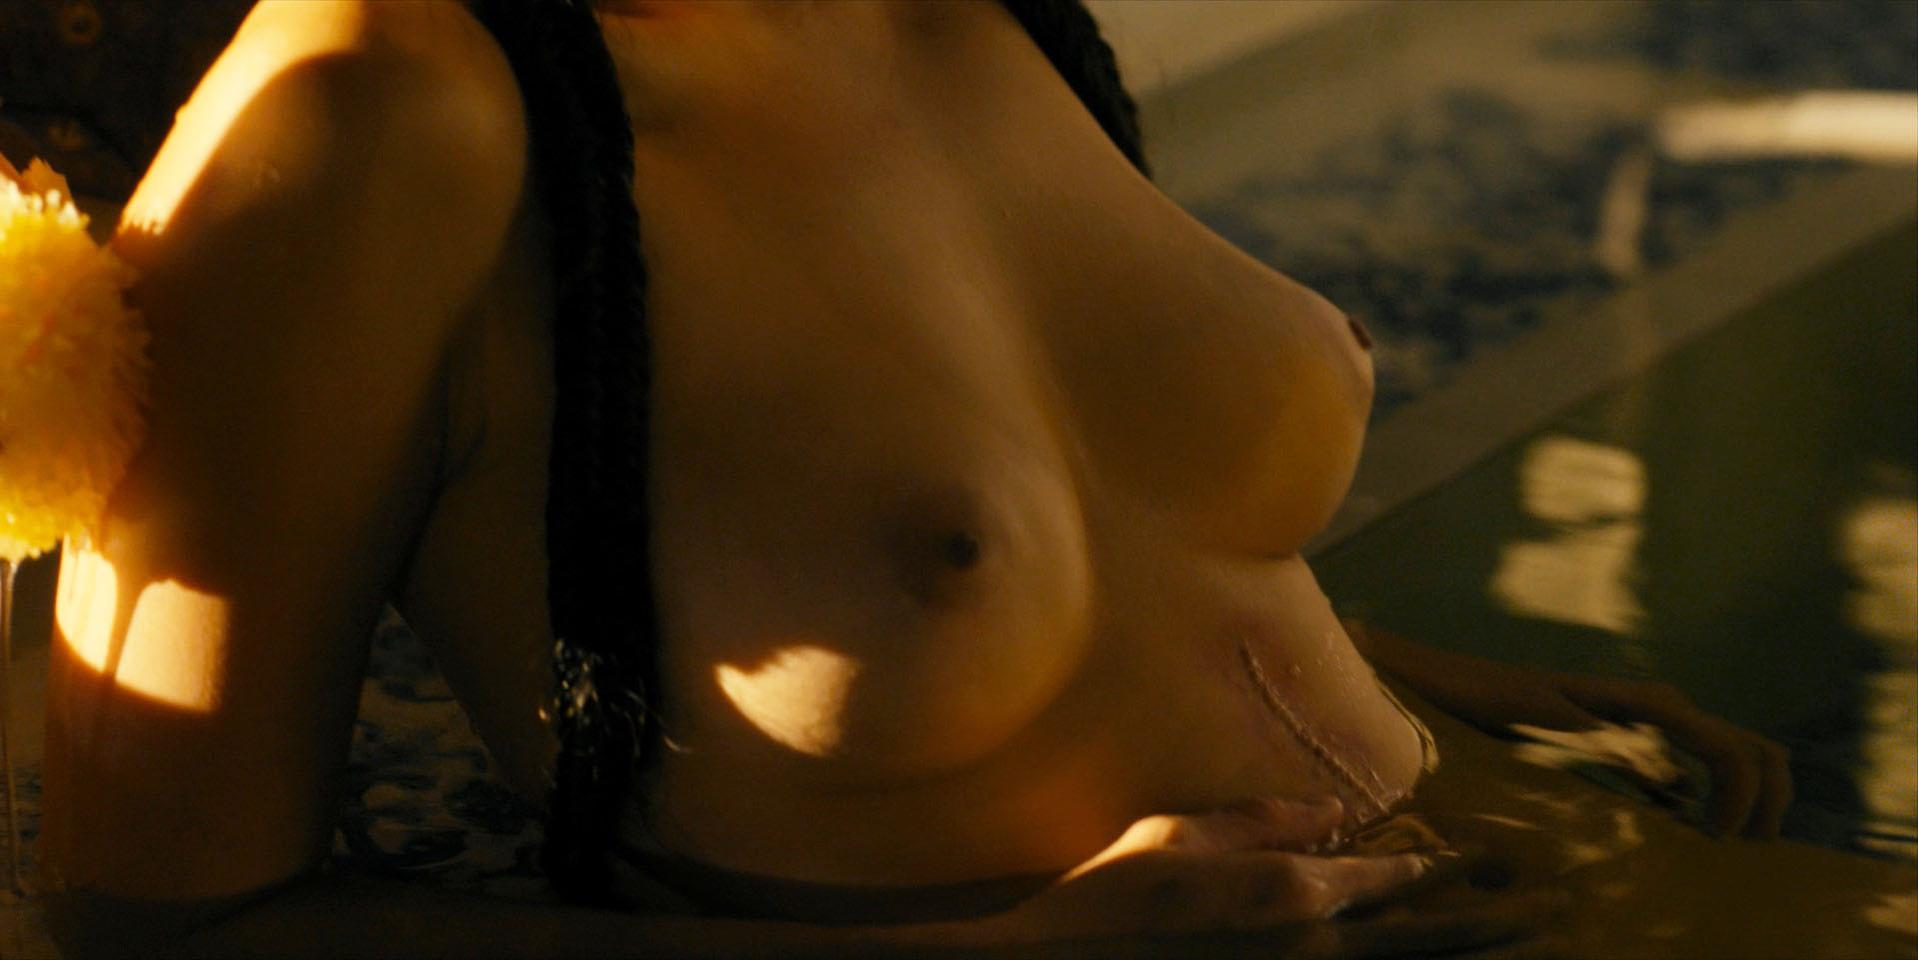 Esther Low nude - Marco Polo s02e05 (2016)